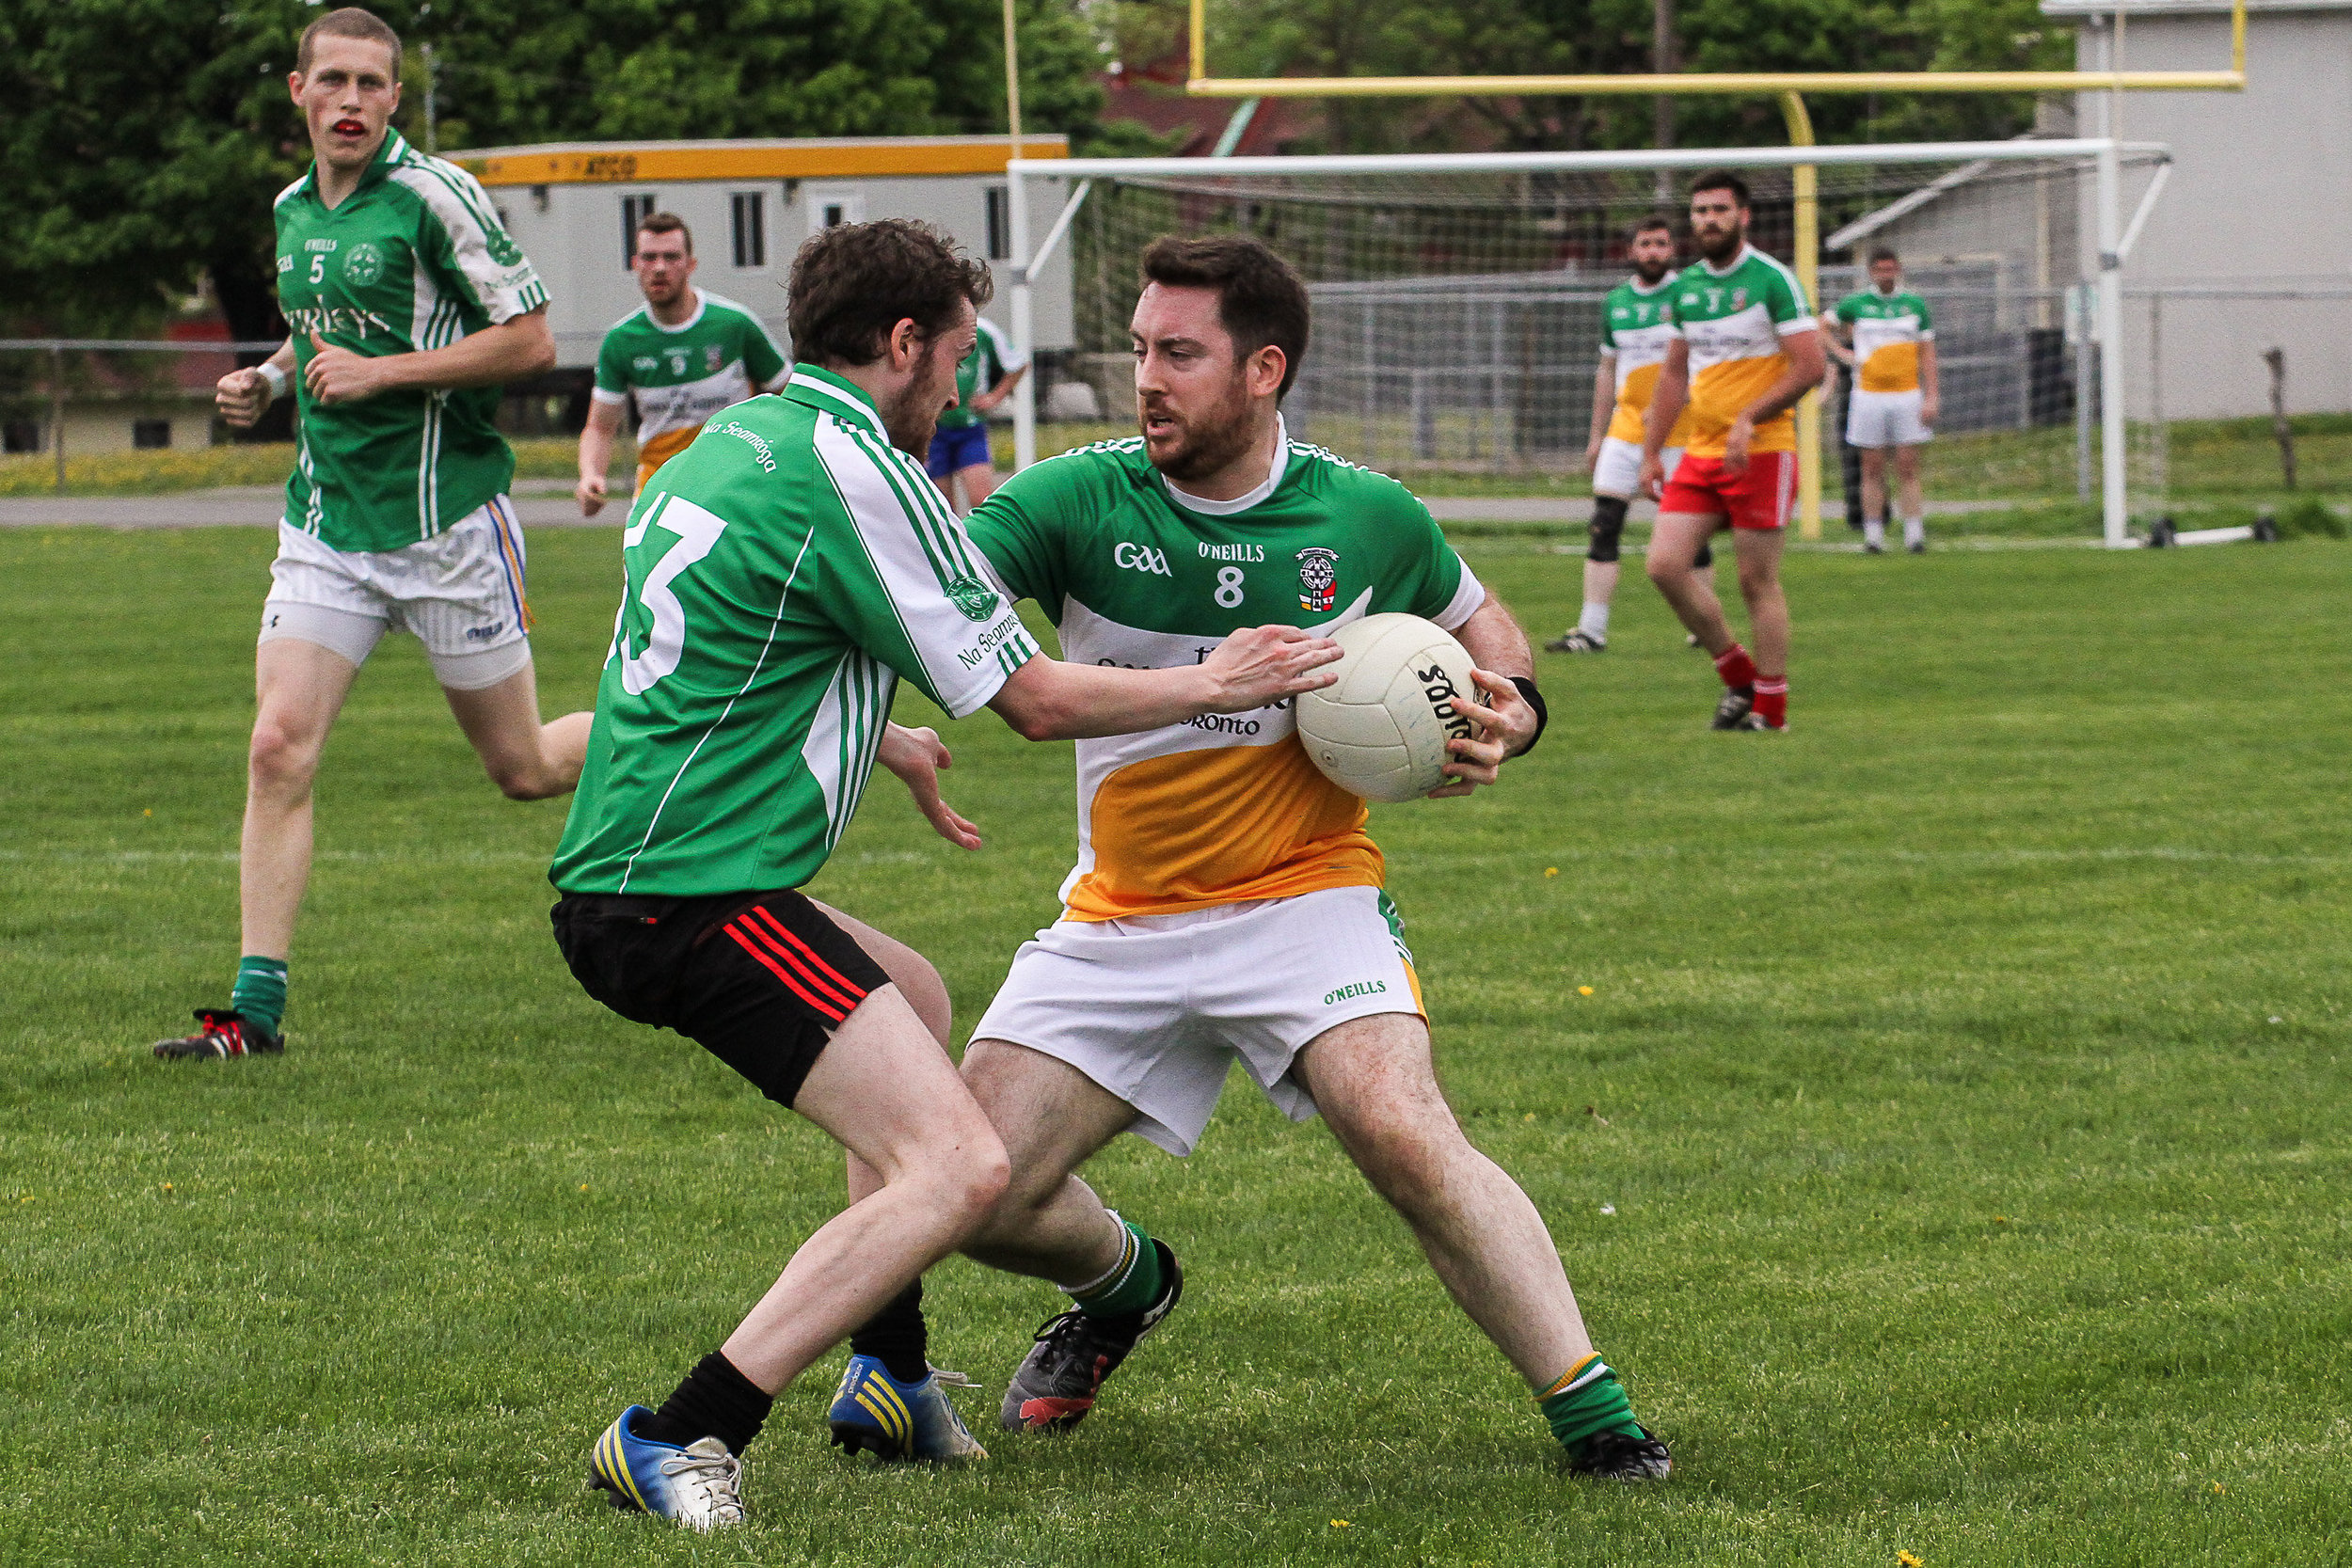 Toronto Gaels Gaelic Football Club - Montreal May Tournament 2015 - ShamrocksvsGaels(4of30).jpg